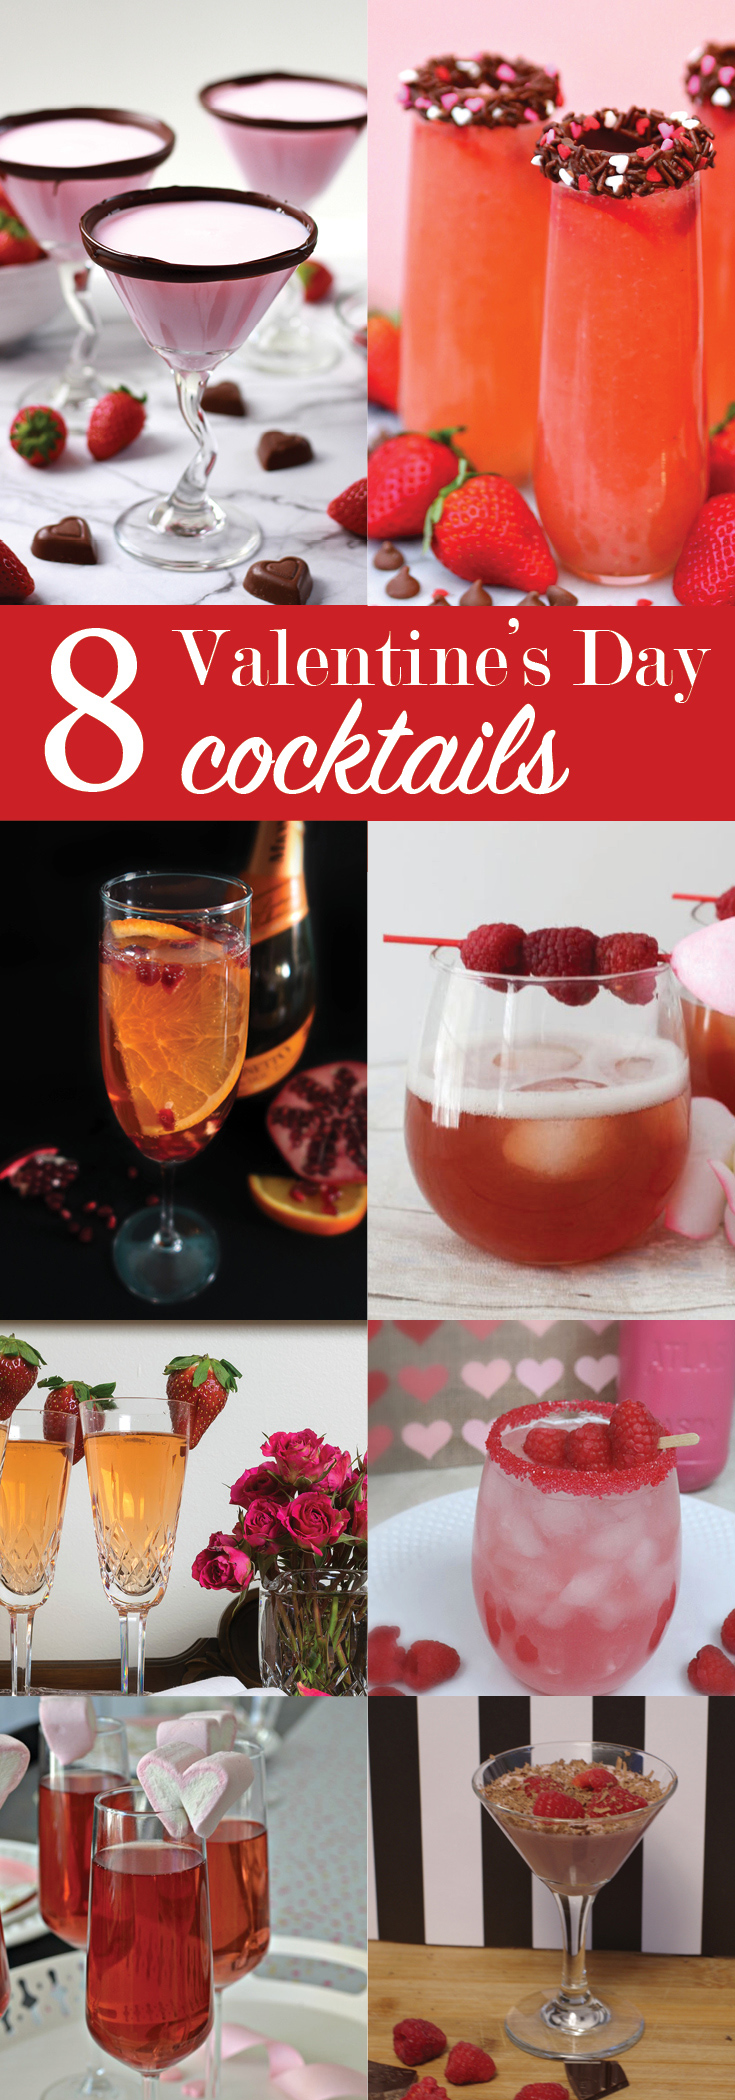 https://www.happygoluckyblog.com/wp-content/uploads/2019/02/8_Valentines_Day-Cocktails.jpg